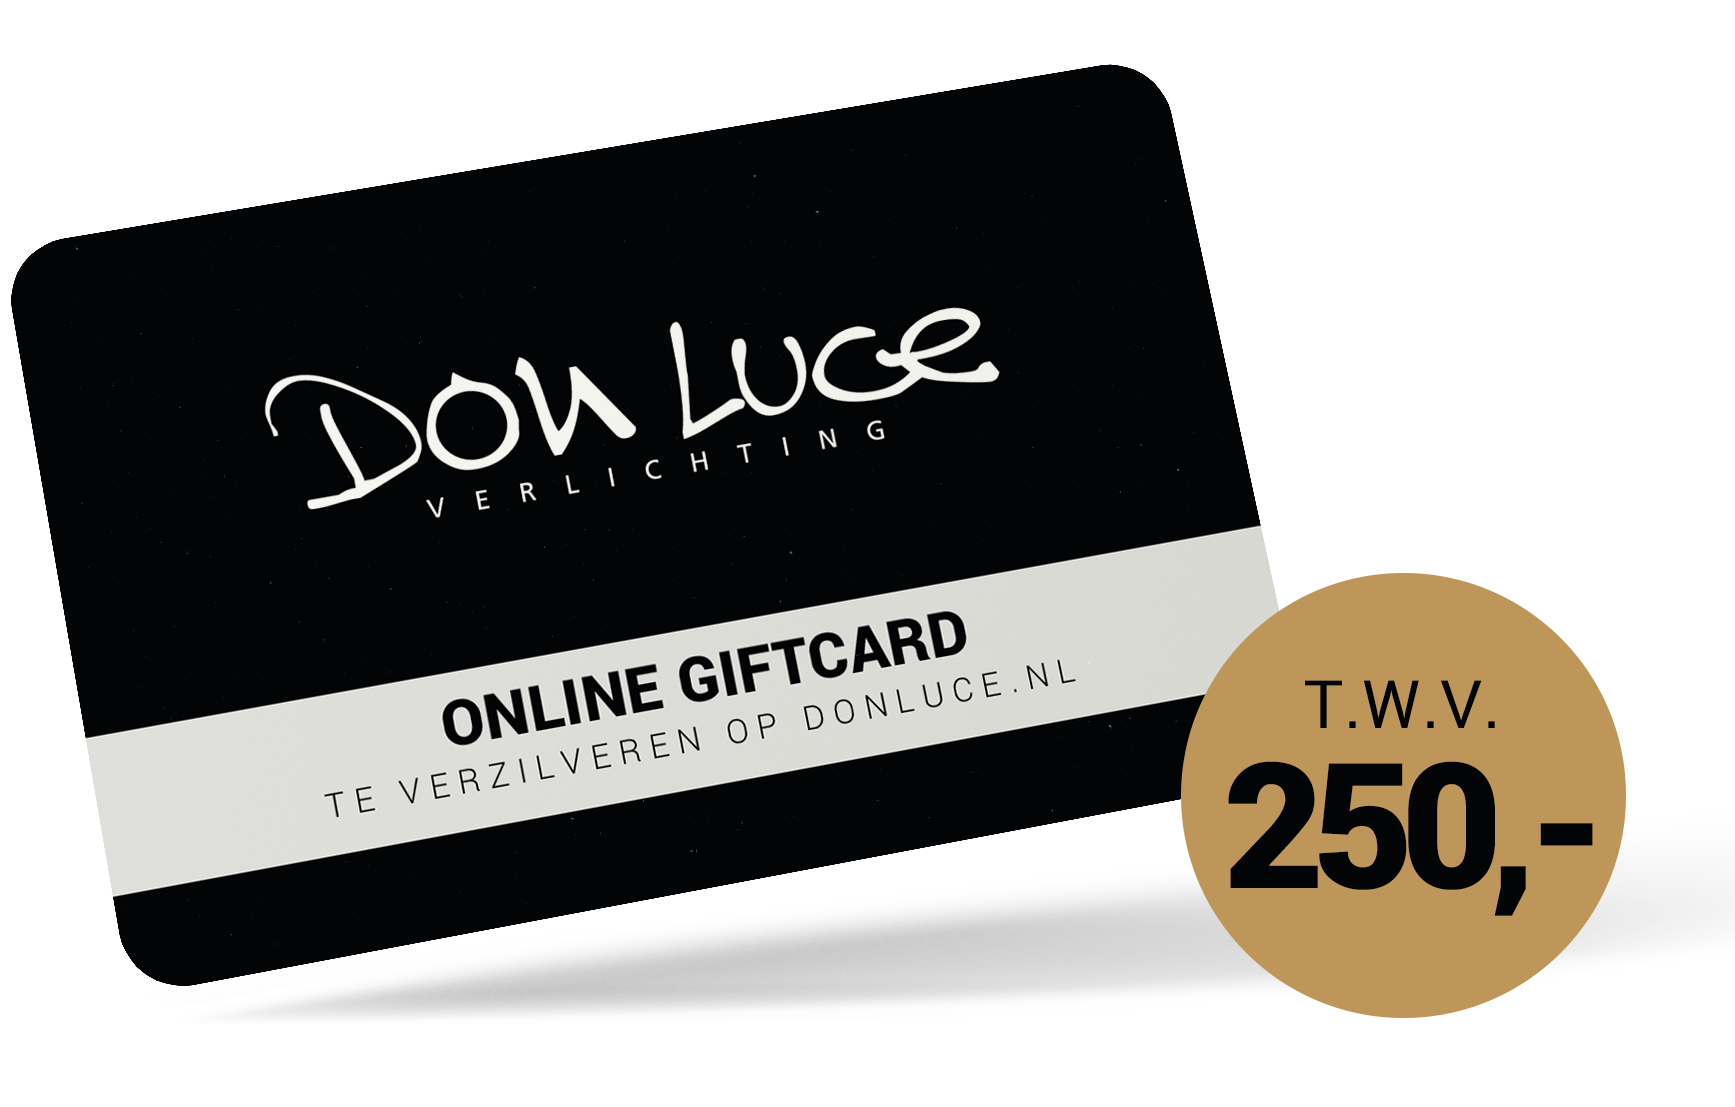 DonLuce Giftcard 250